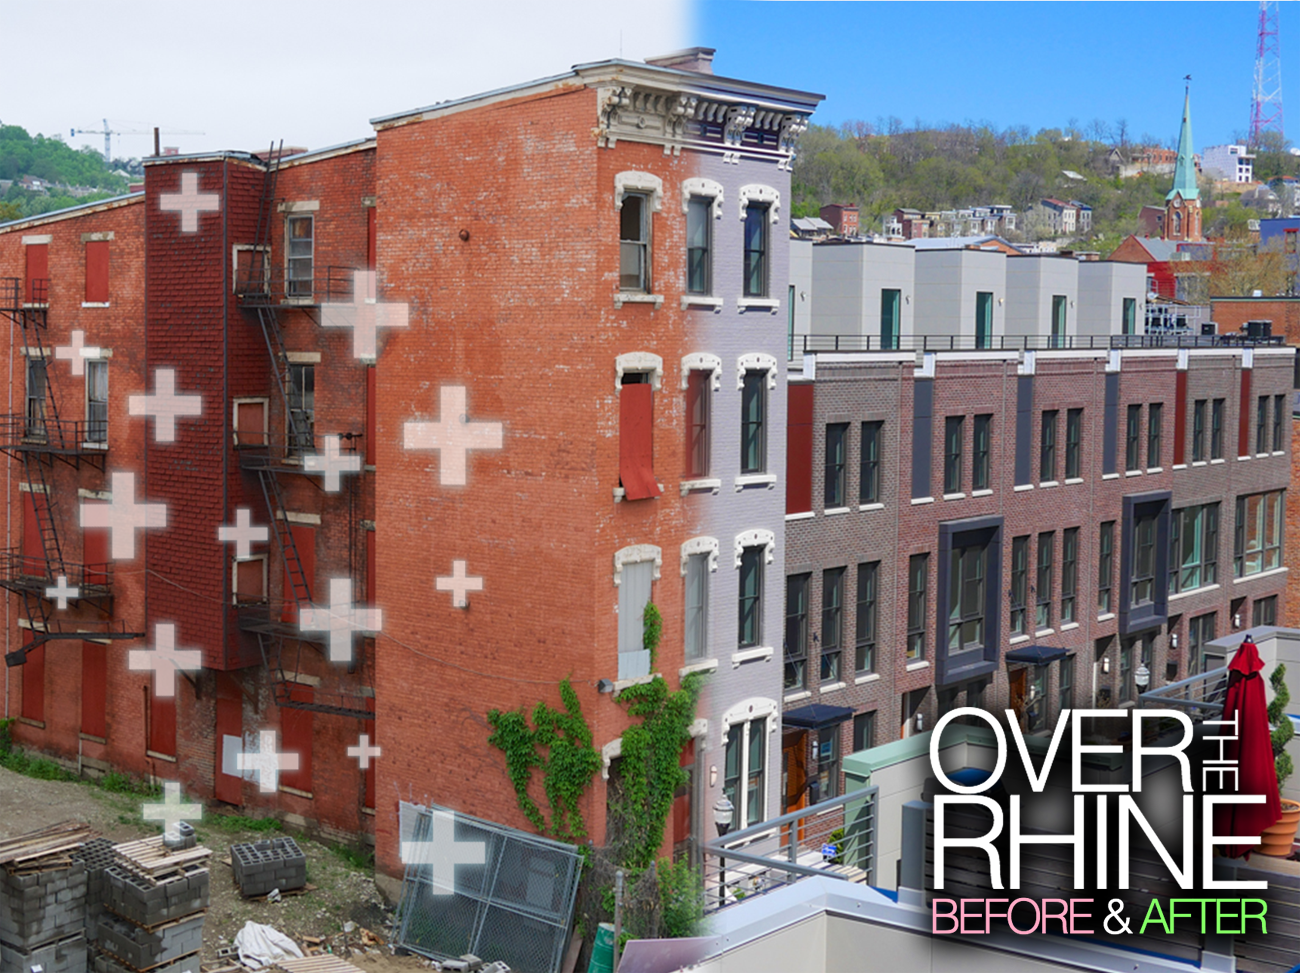 "Over-the-Rhine: Before & After / ""I want Cincinnati's urban neighborhoods to continue to grow and develop [...]. And I want to see more locals drop the 'Cincinnati's just OK' attitude and start taking advantage of all the great assets that our city has."" -- Travis Estell"